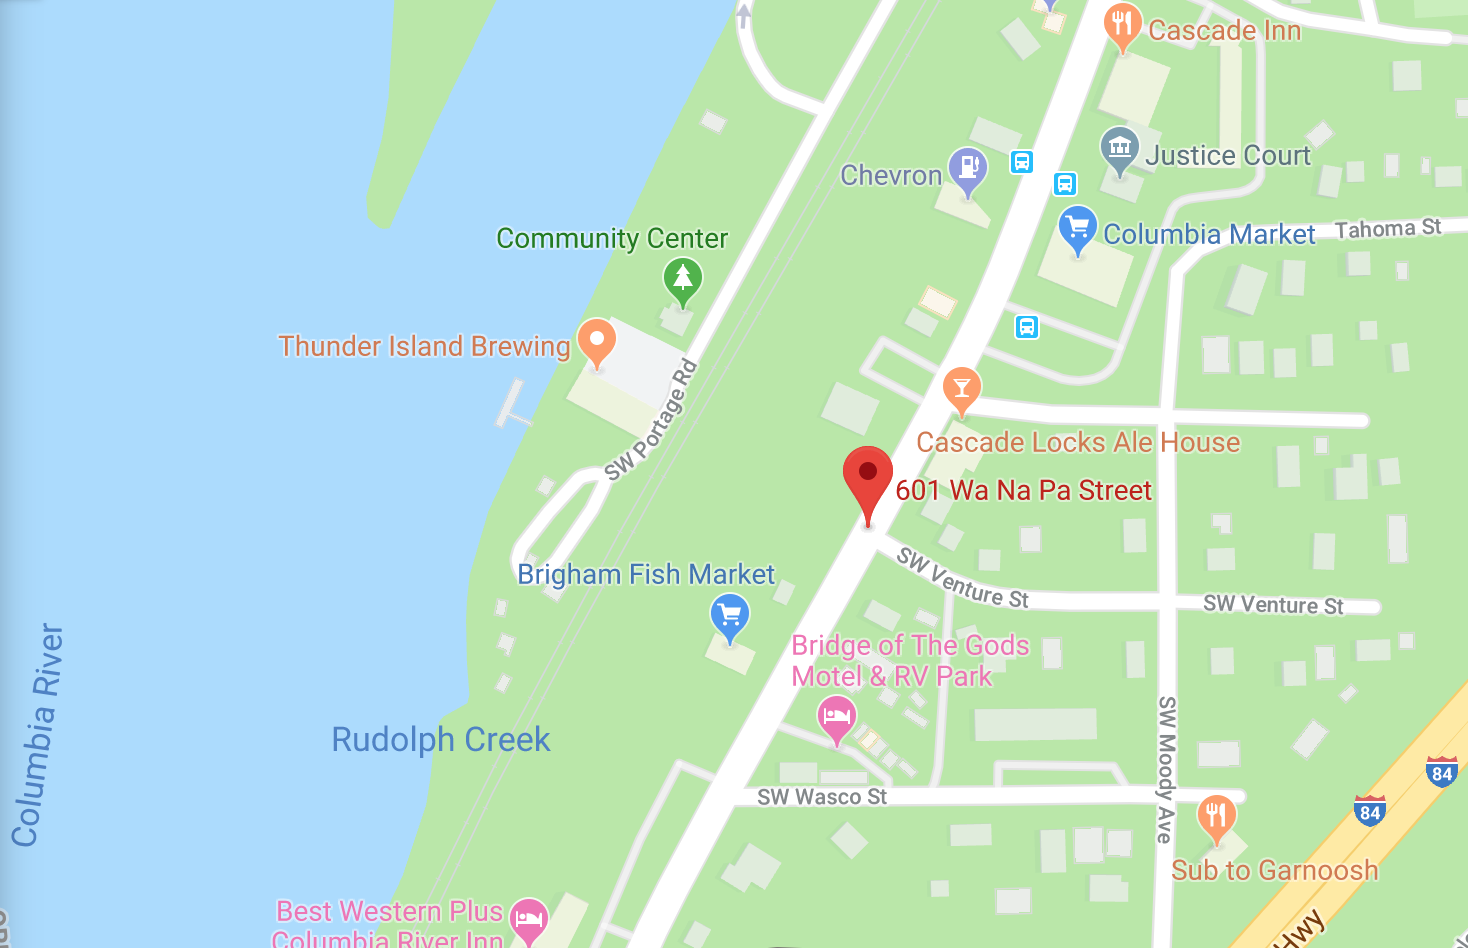 The location of the forthcoming Thunder Island Brewing located at 601 WaNaPa Street in Cascade Locks, Oregon. (image courtesy of Google)